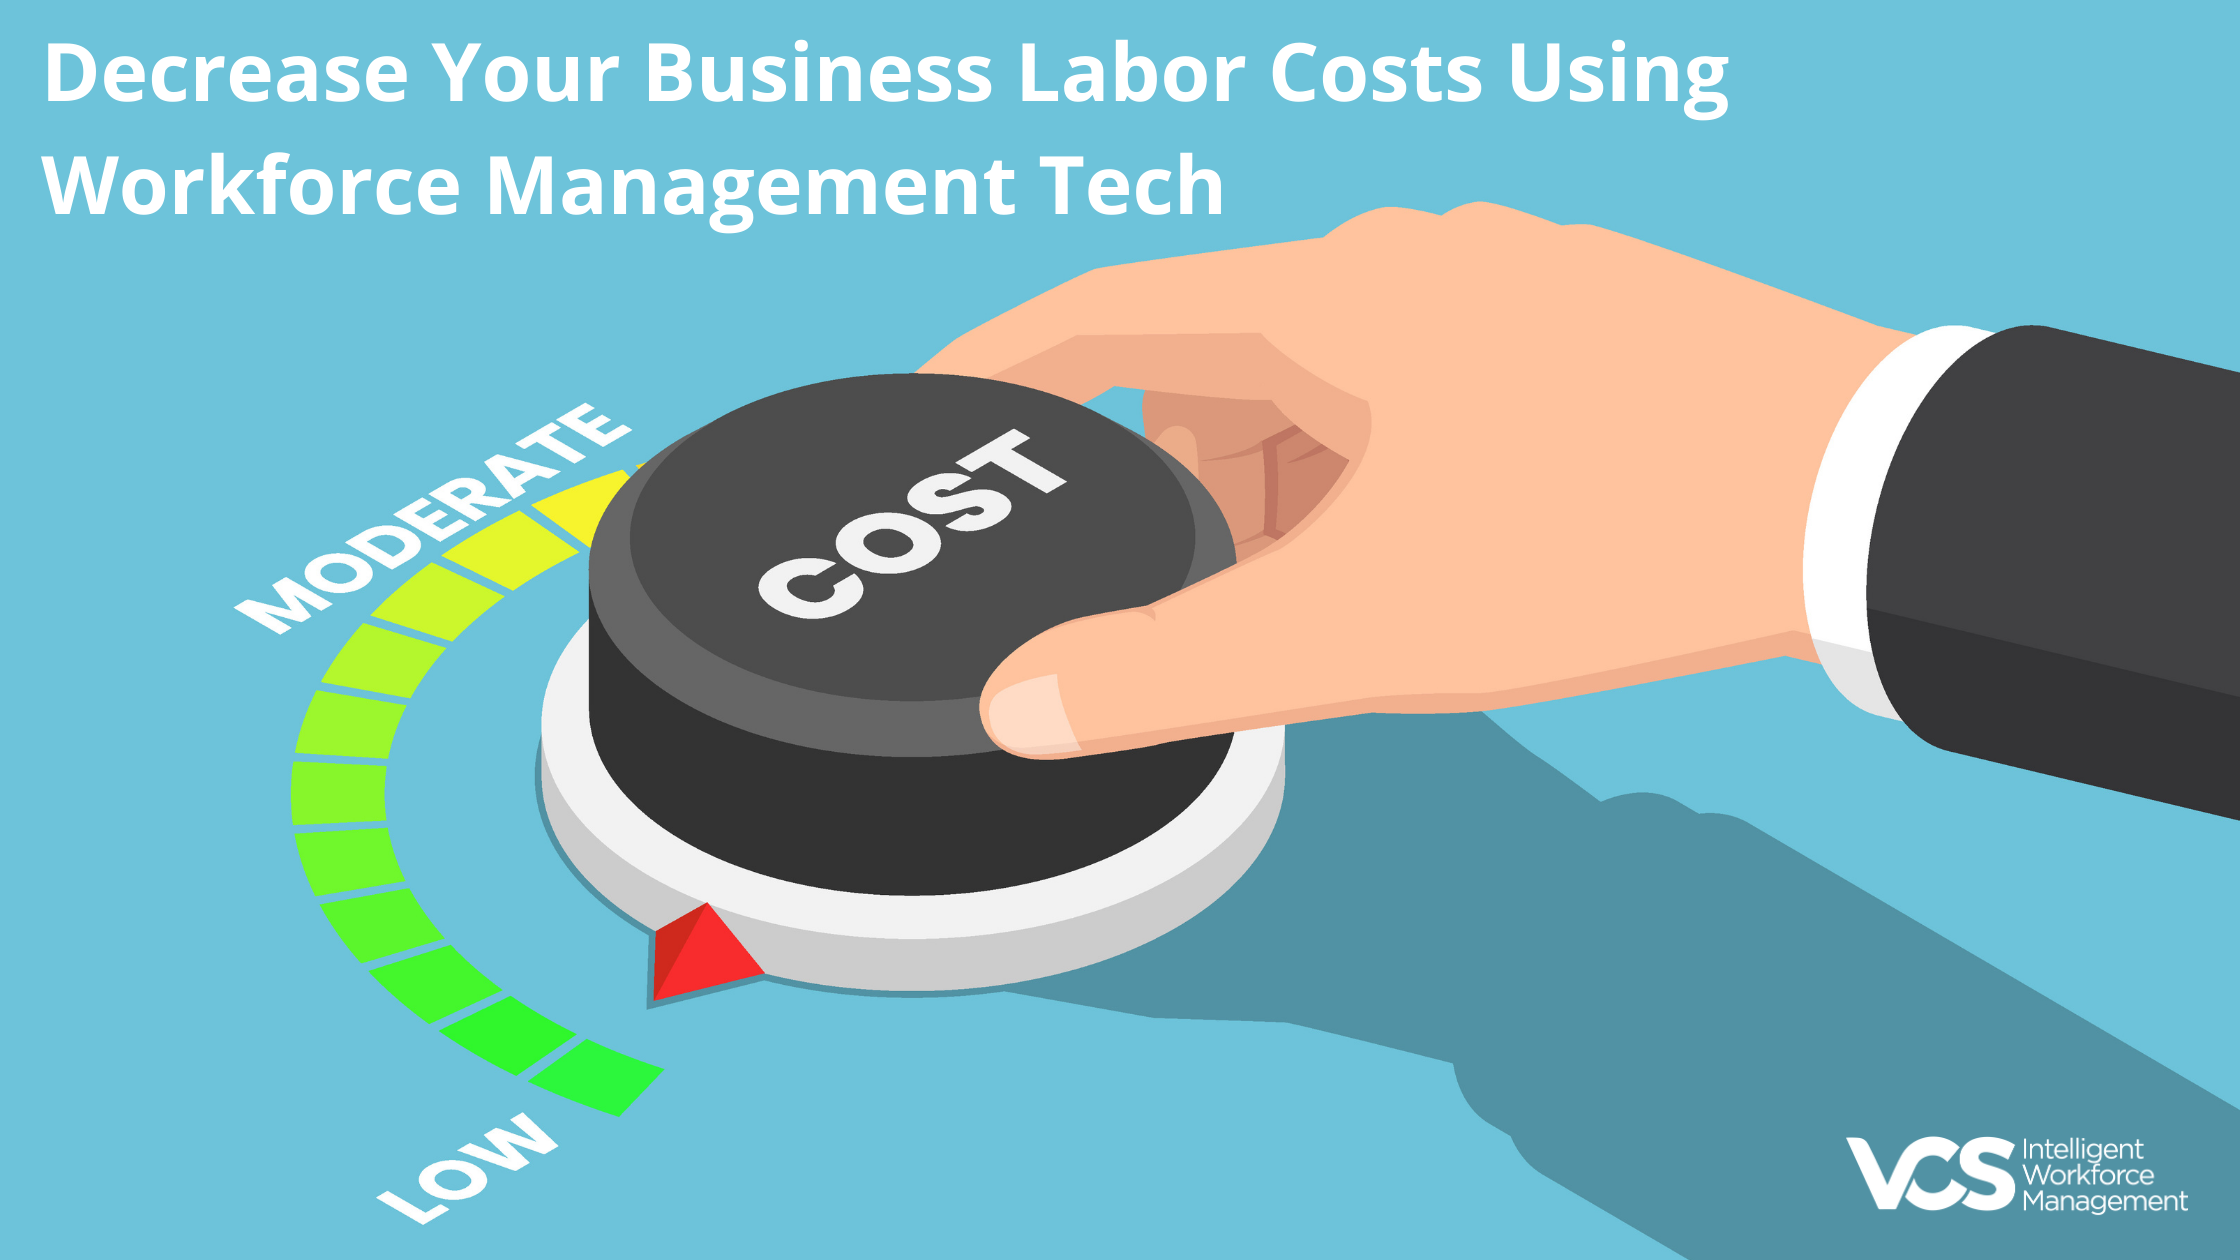 Decrease Your Business Labor Costs Using Workforce Management Tech